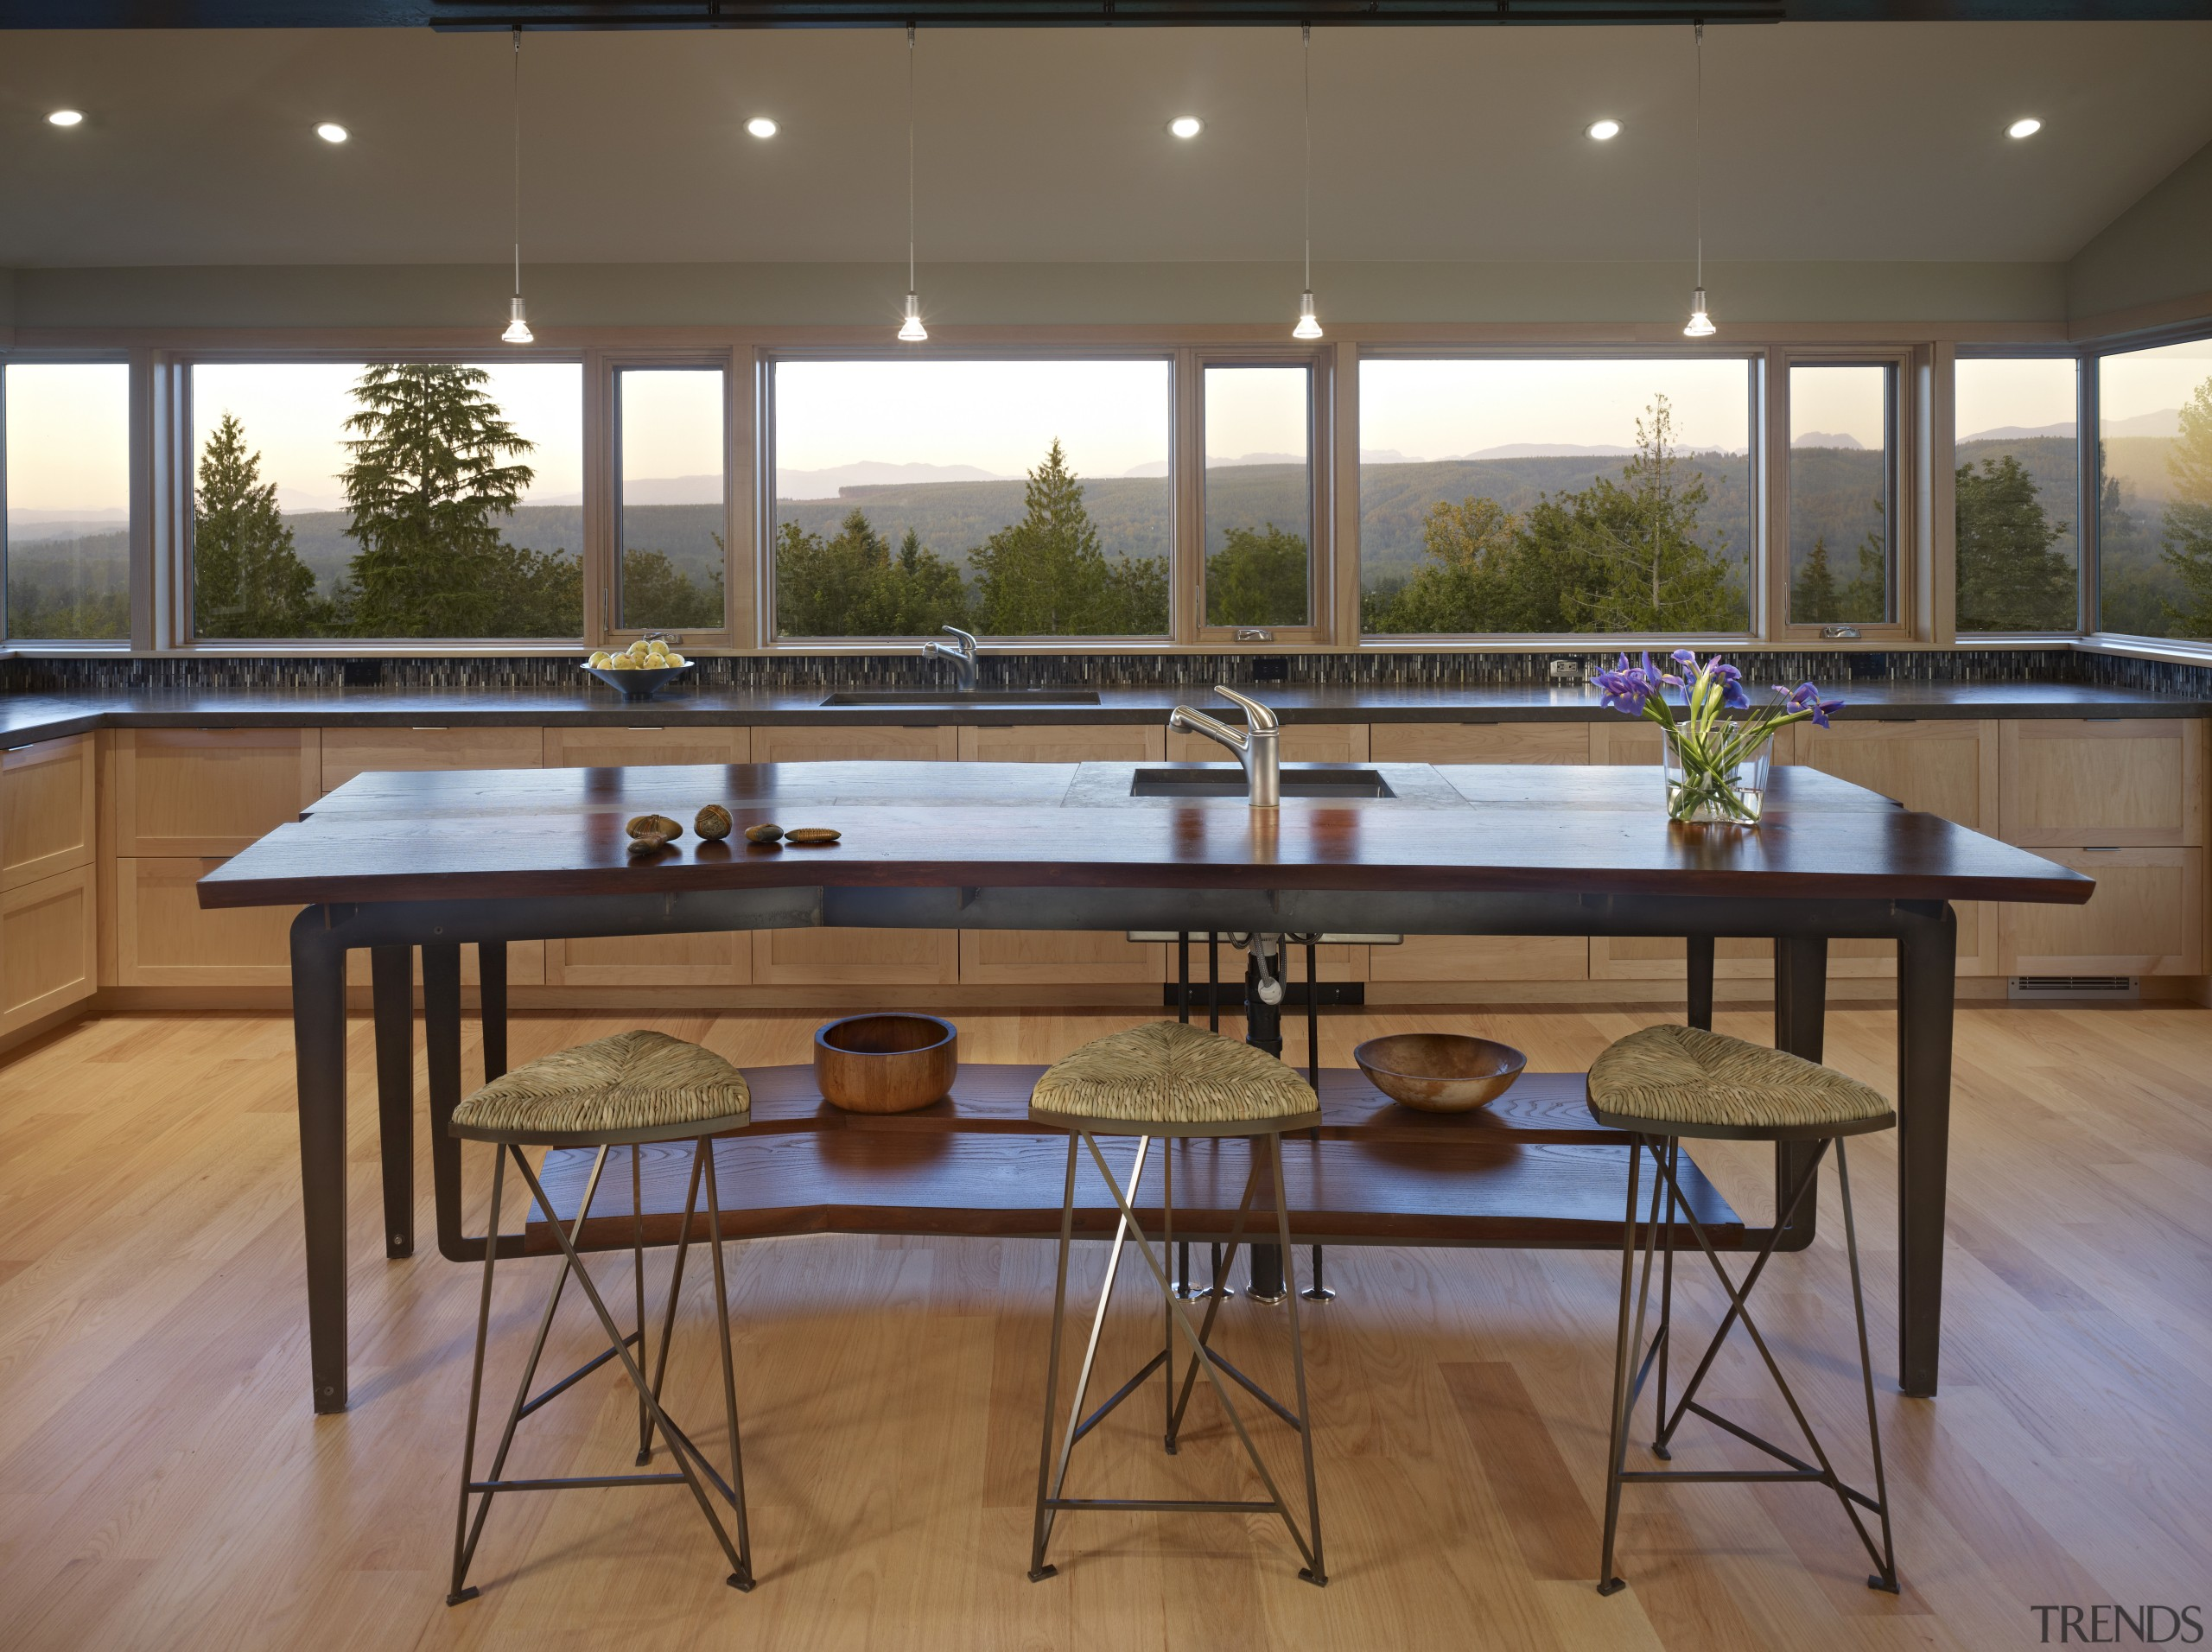 This home and kitchen was designed by Finne floor, flooring, furniture, interior design, recreation room, table, window, wood, brown